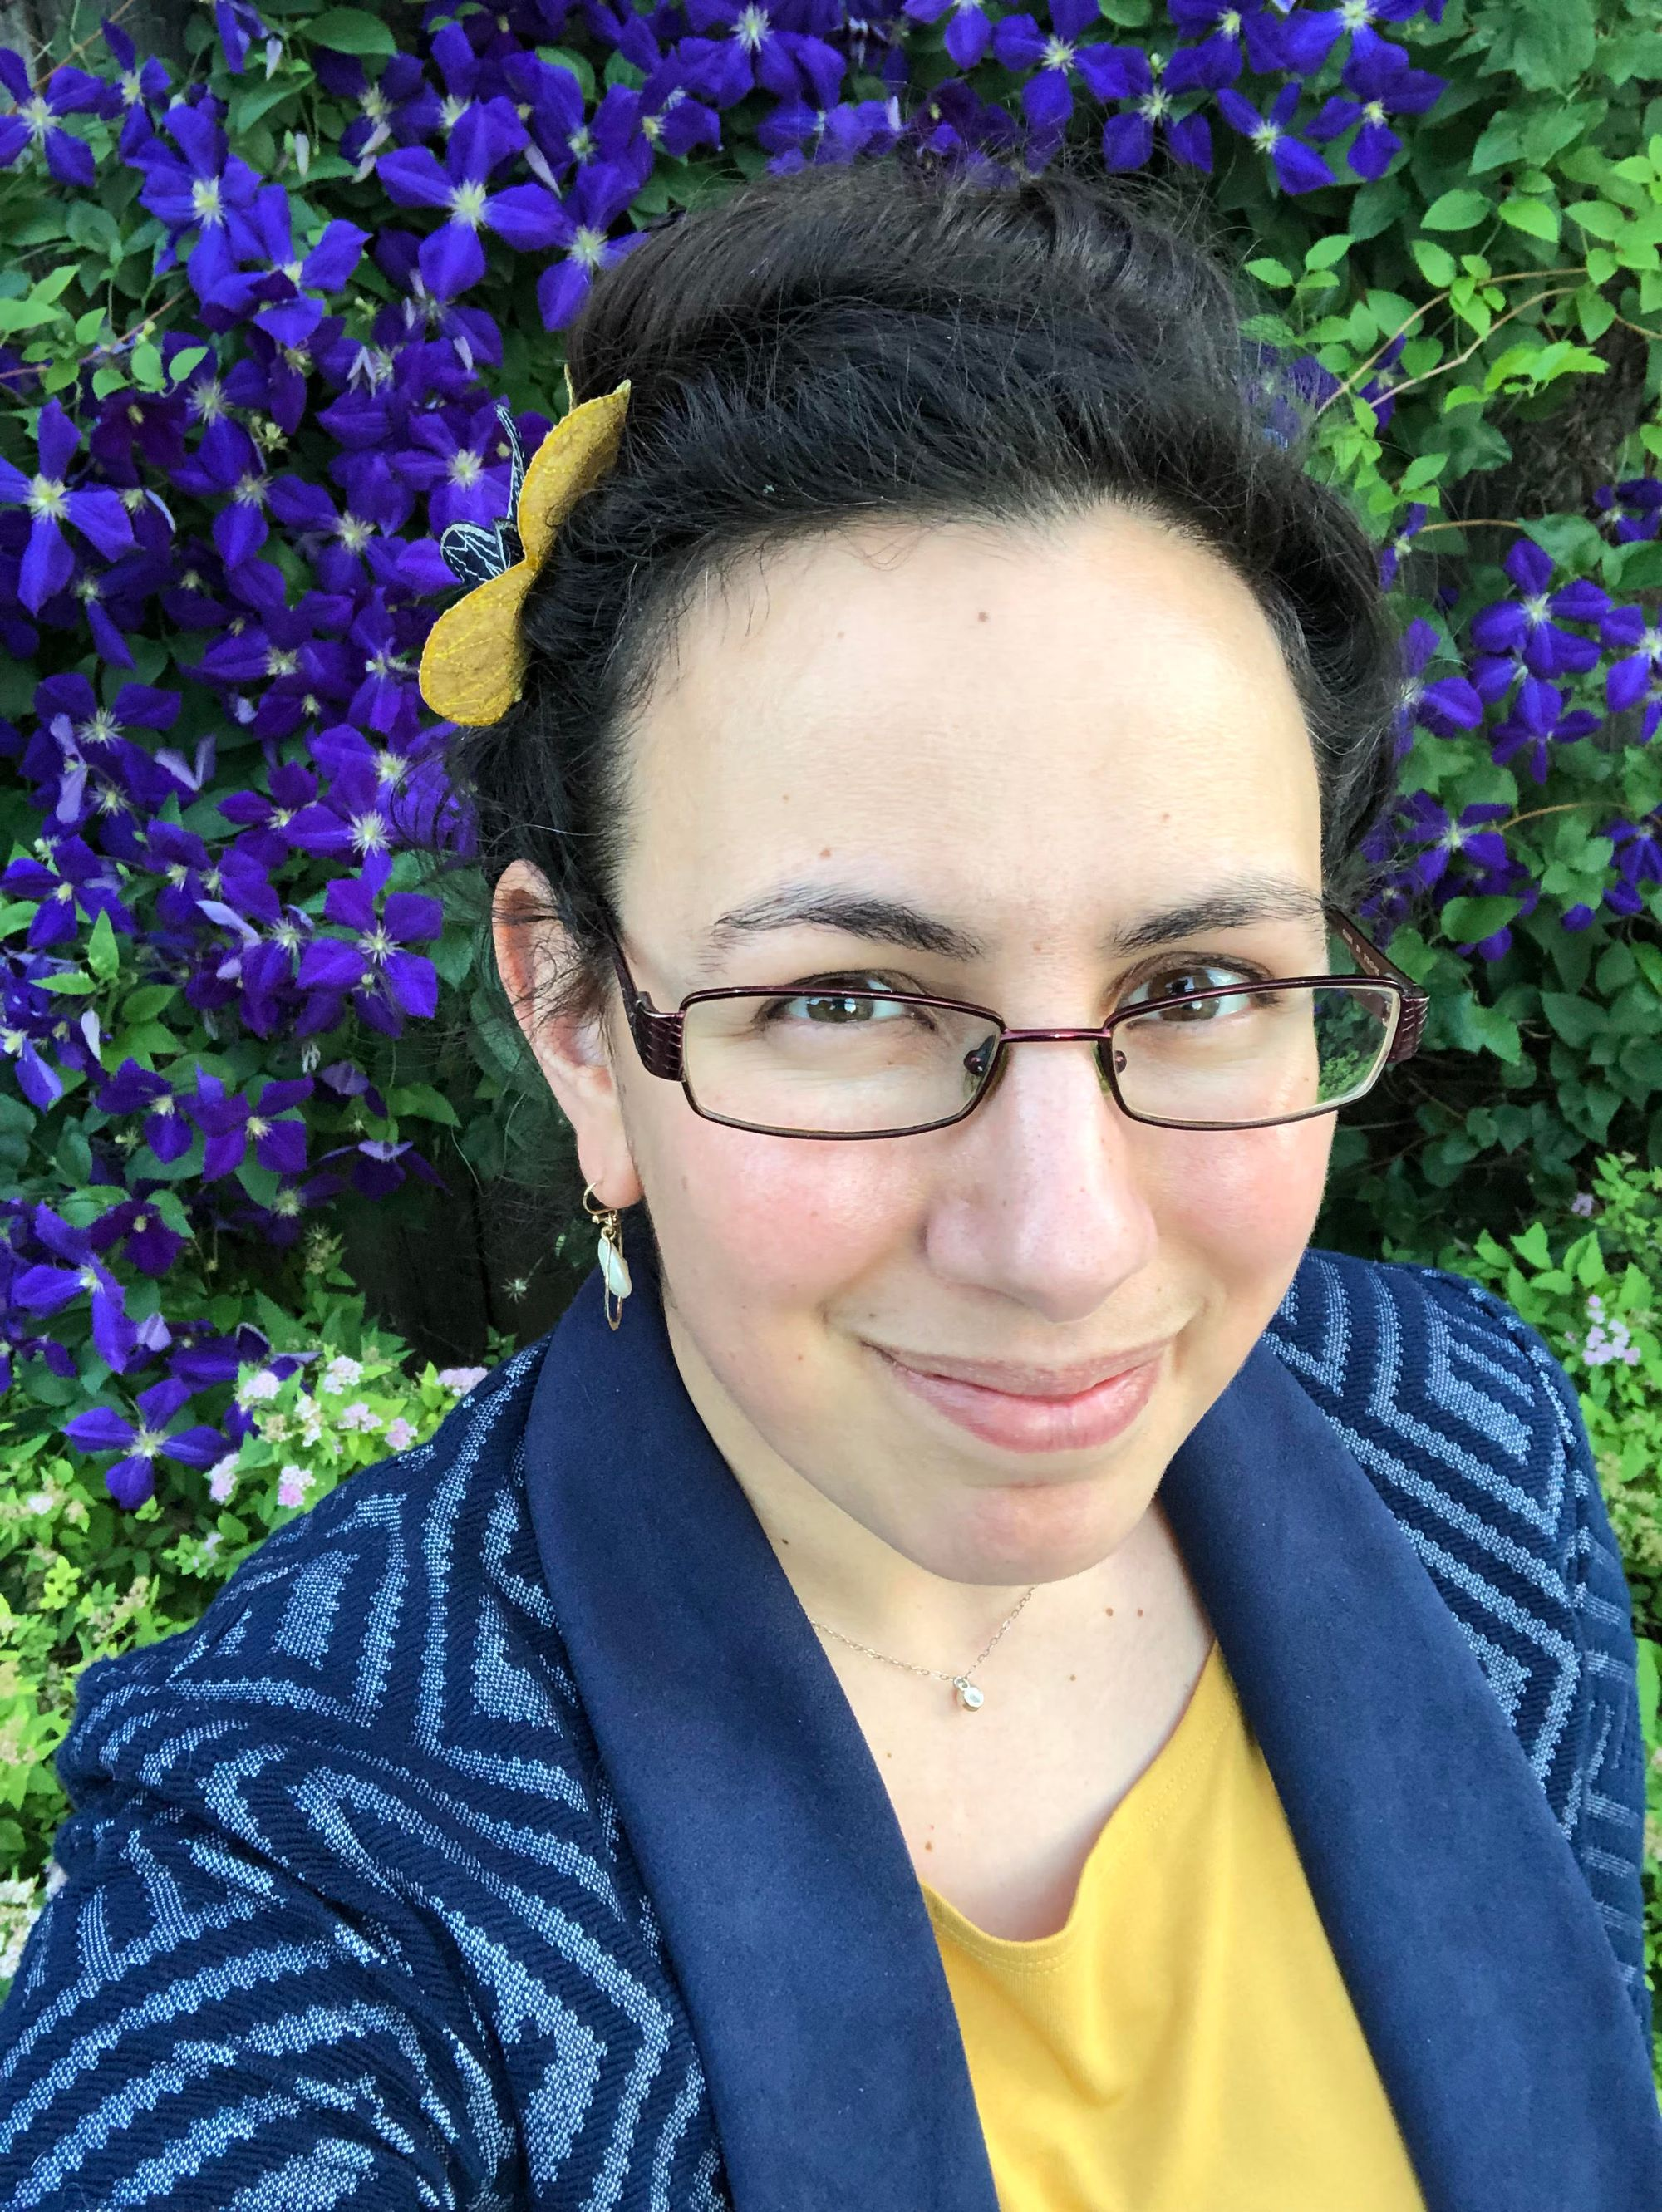 Selfie: I'm wearing glasses and a blue blazer with a geometric pattern over a bright yellow t-shirt against a backdrop of spectacularly purple-blue clematis flowers. I have two silk flowers in my pinned-up dark hair: one bright yellow and one dark blue. I'm wearing a tiny pearl necklace on a short delicate chain and larger freshwater-pearl earrings in a rose-gold setting.